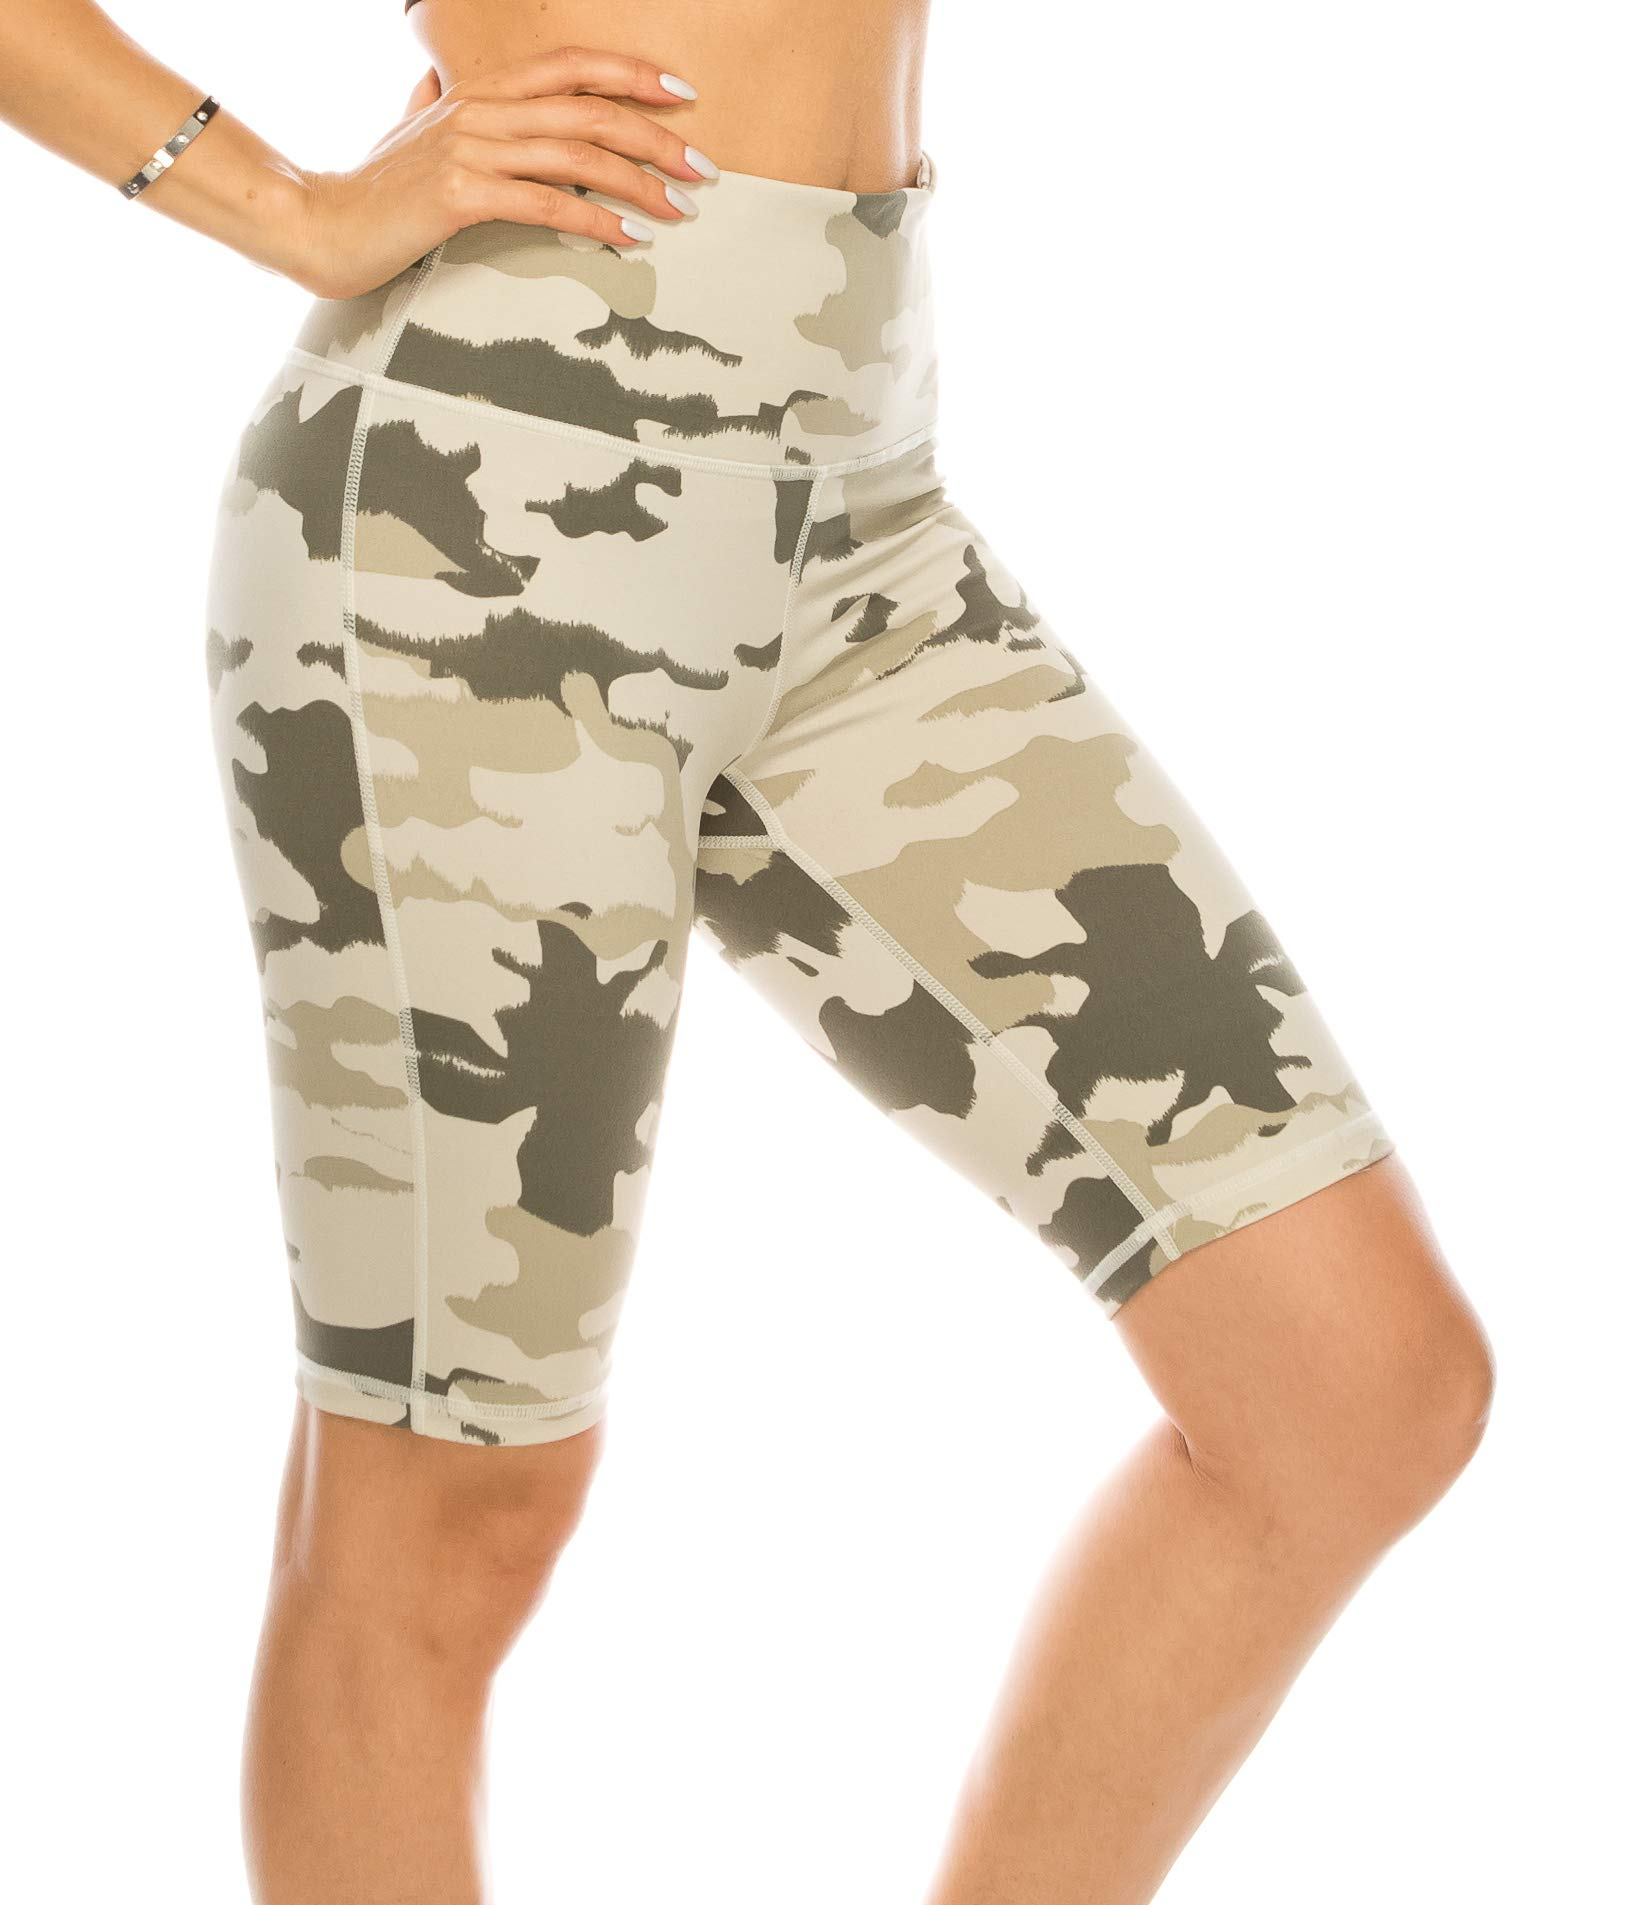 CNC STYLE B014 Women's Knee Length Stretchy Camo Print Biker Shorts Leggings High Waisted Bermuda Tights, Camo, Small by CNC STYLE